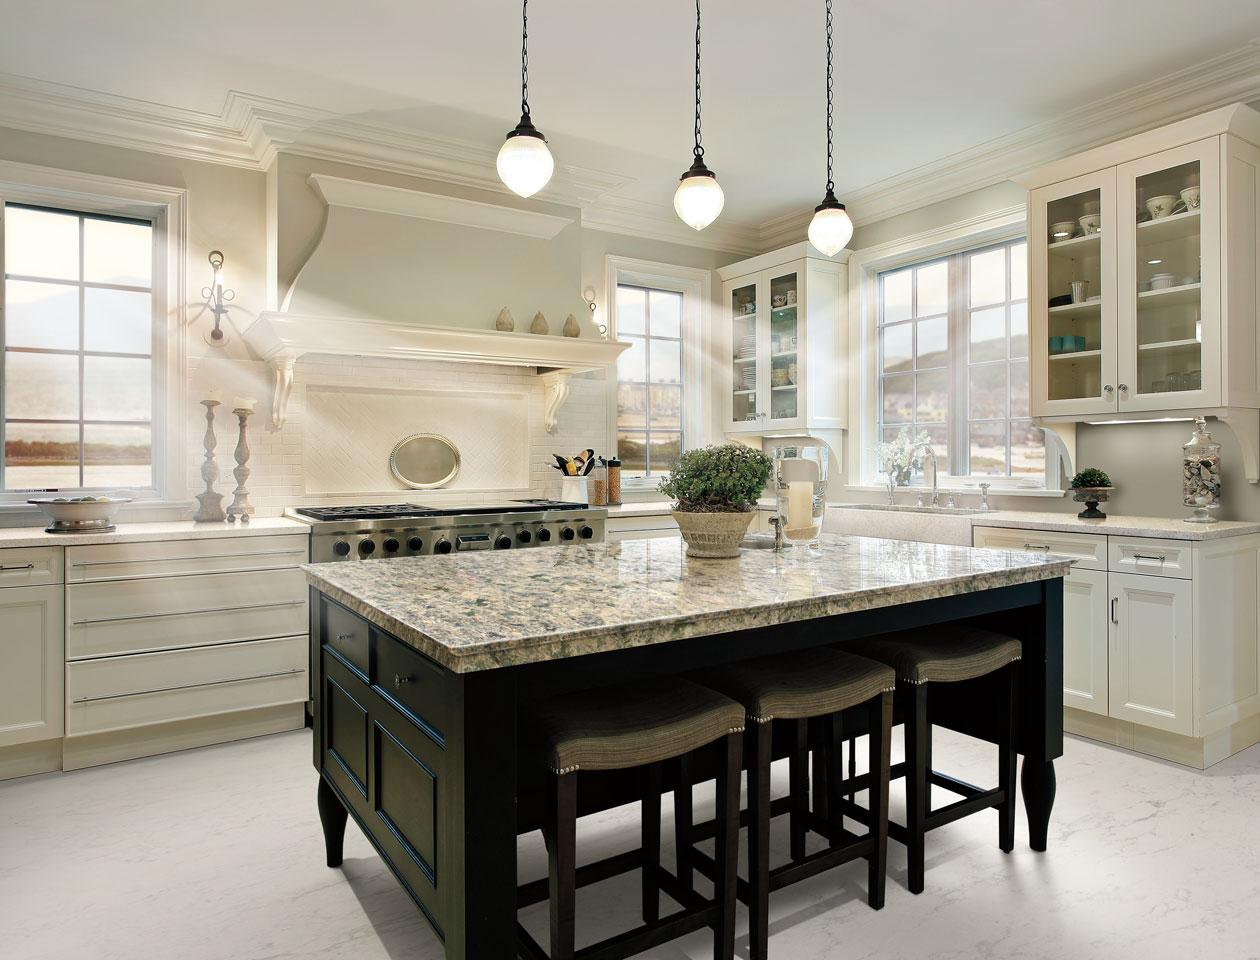 Get Some Cambria Kitchen Counter Inspiration From StoneTrends